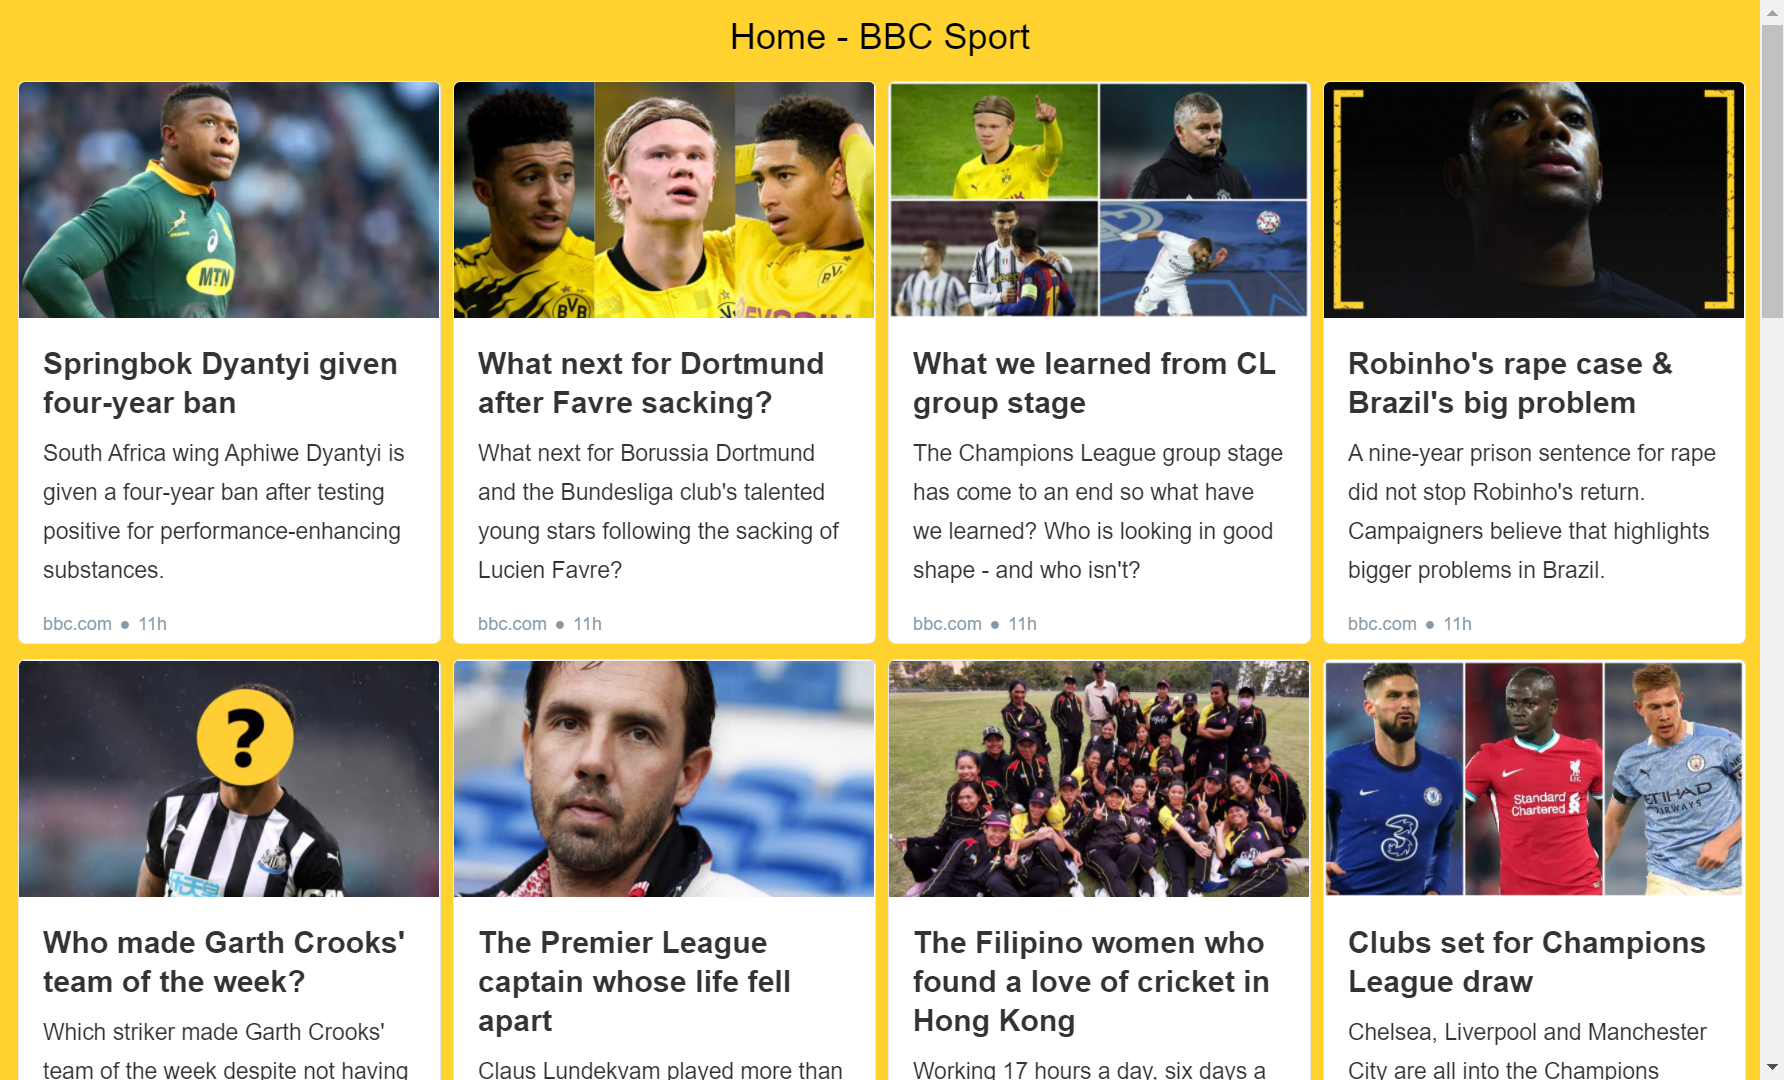 BBC Sports RSS feed